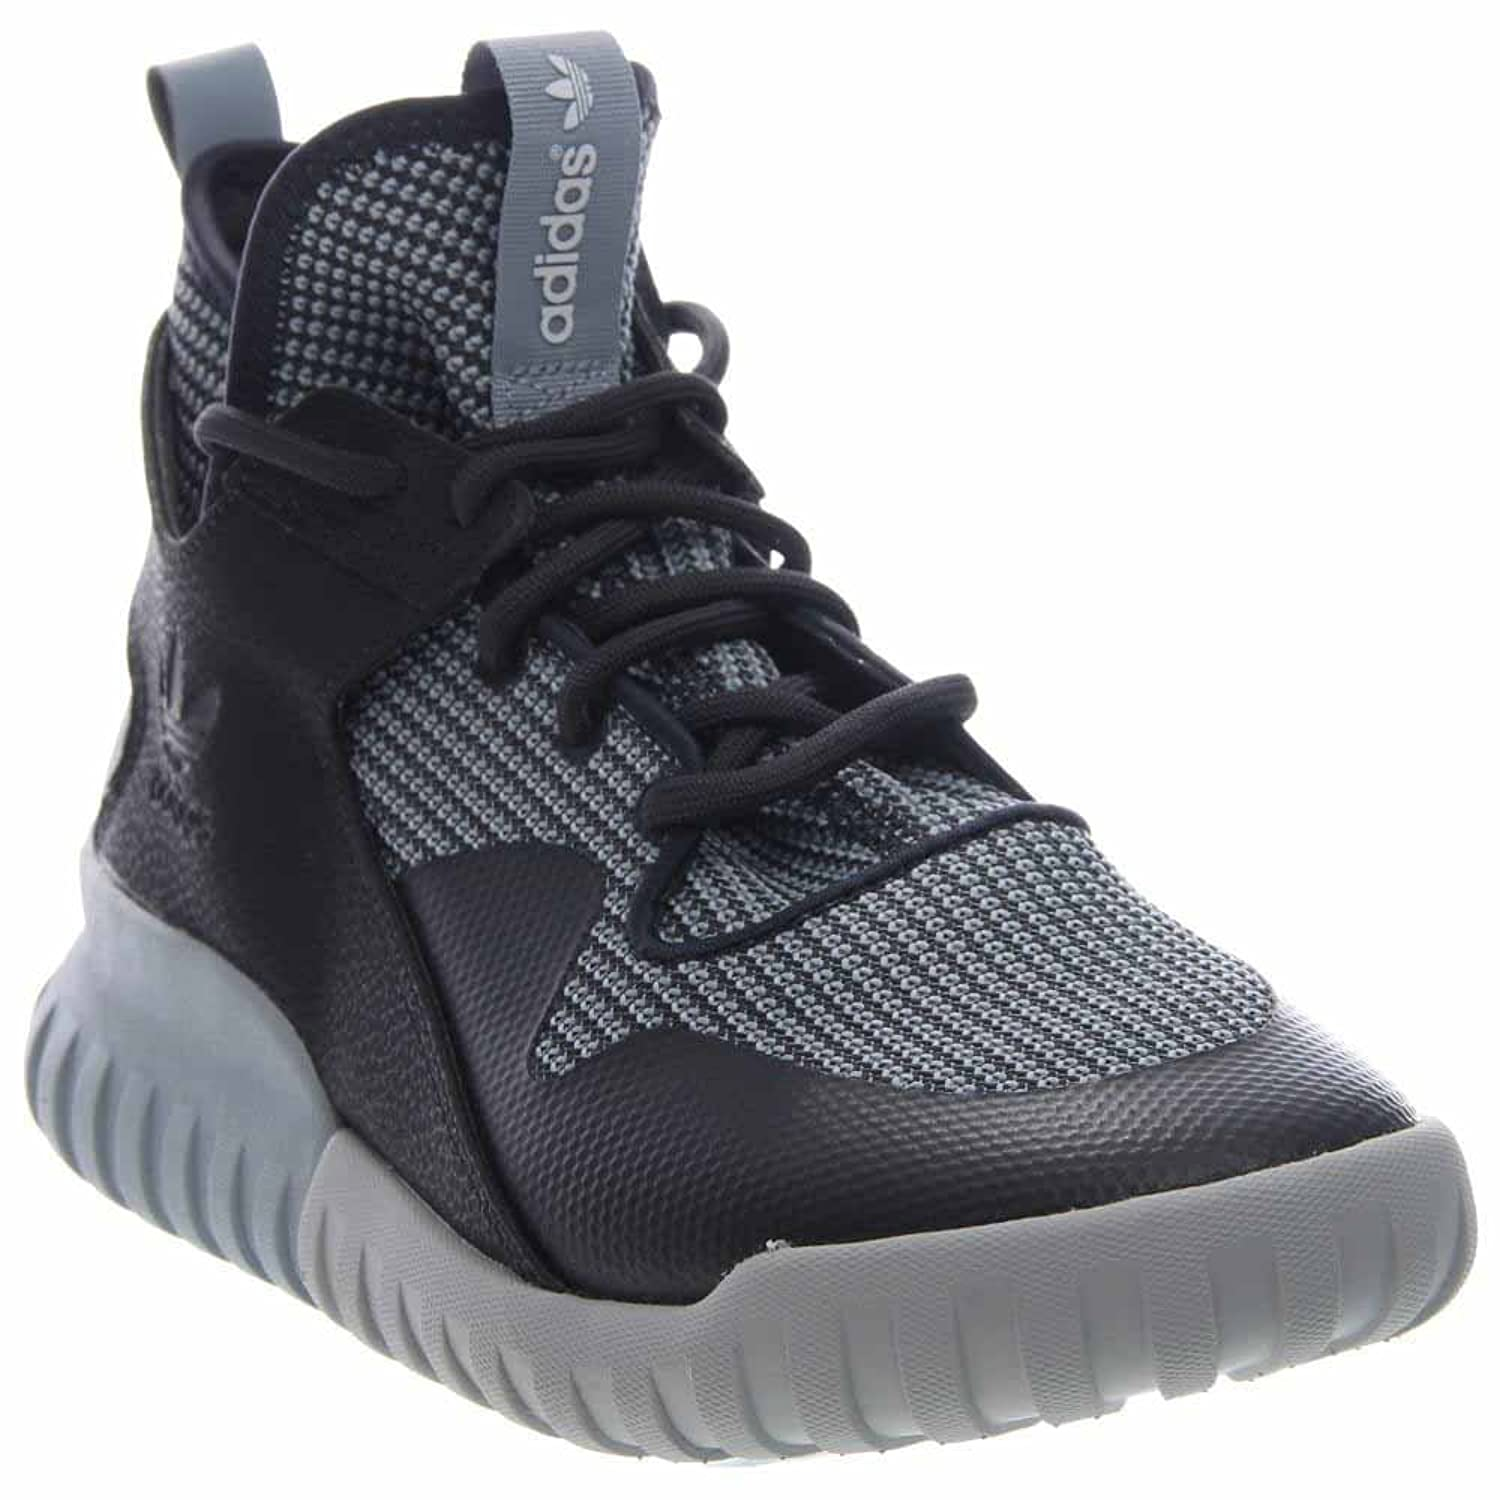 Cheap Adidas Tubular X 2.0 PK Black Side Step #OurStyleIsReal